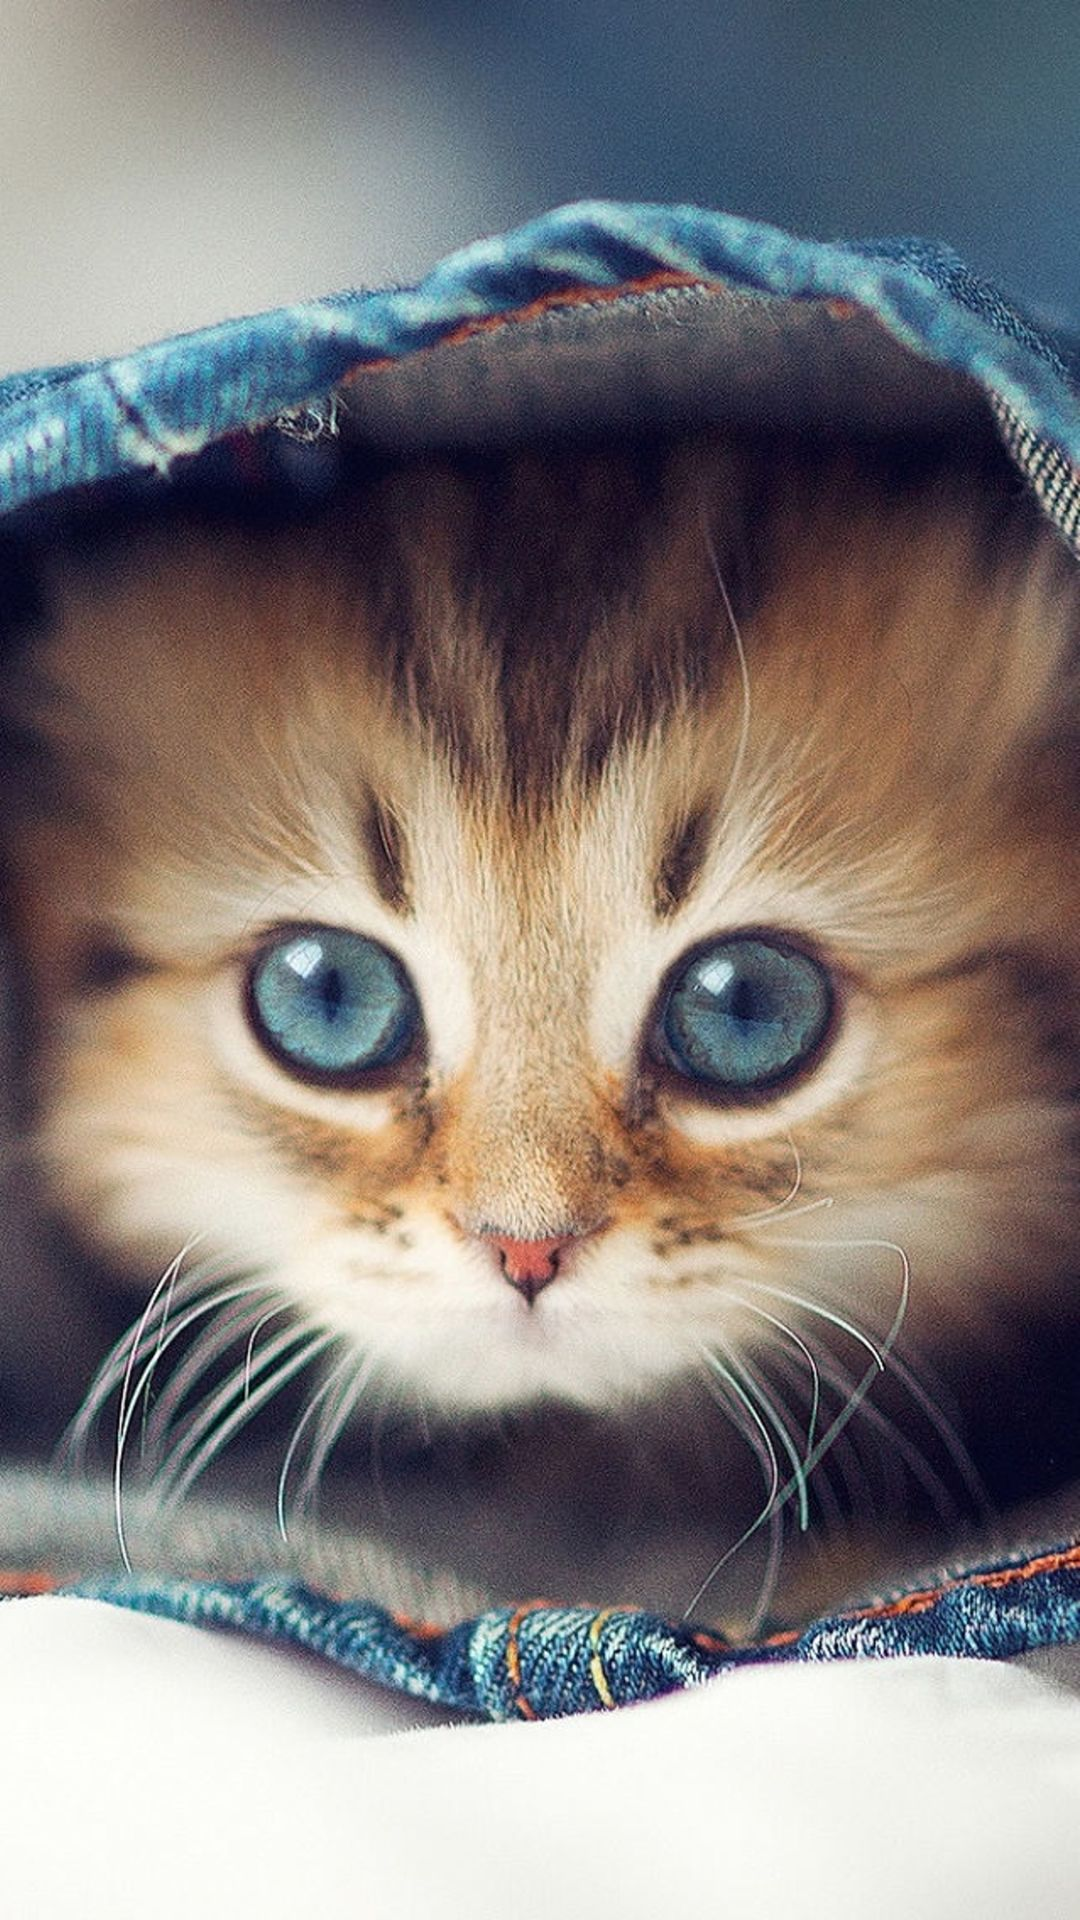 Cute Cat In Jeans Pants Iphone 6 Wallpaper Download Iphone Wallpapers Ipad Wallpapers One Stop Download Kittens Cutest Baby Animals Cute Cats